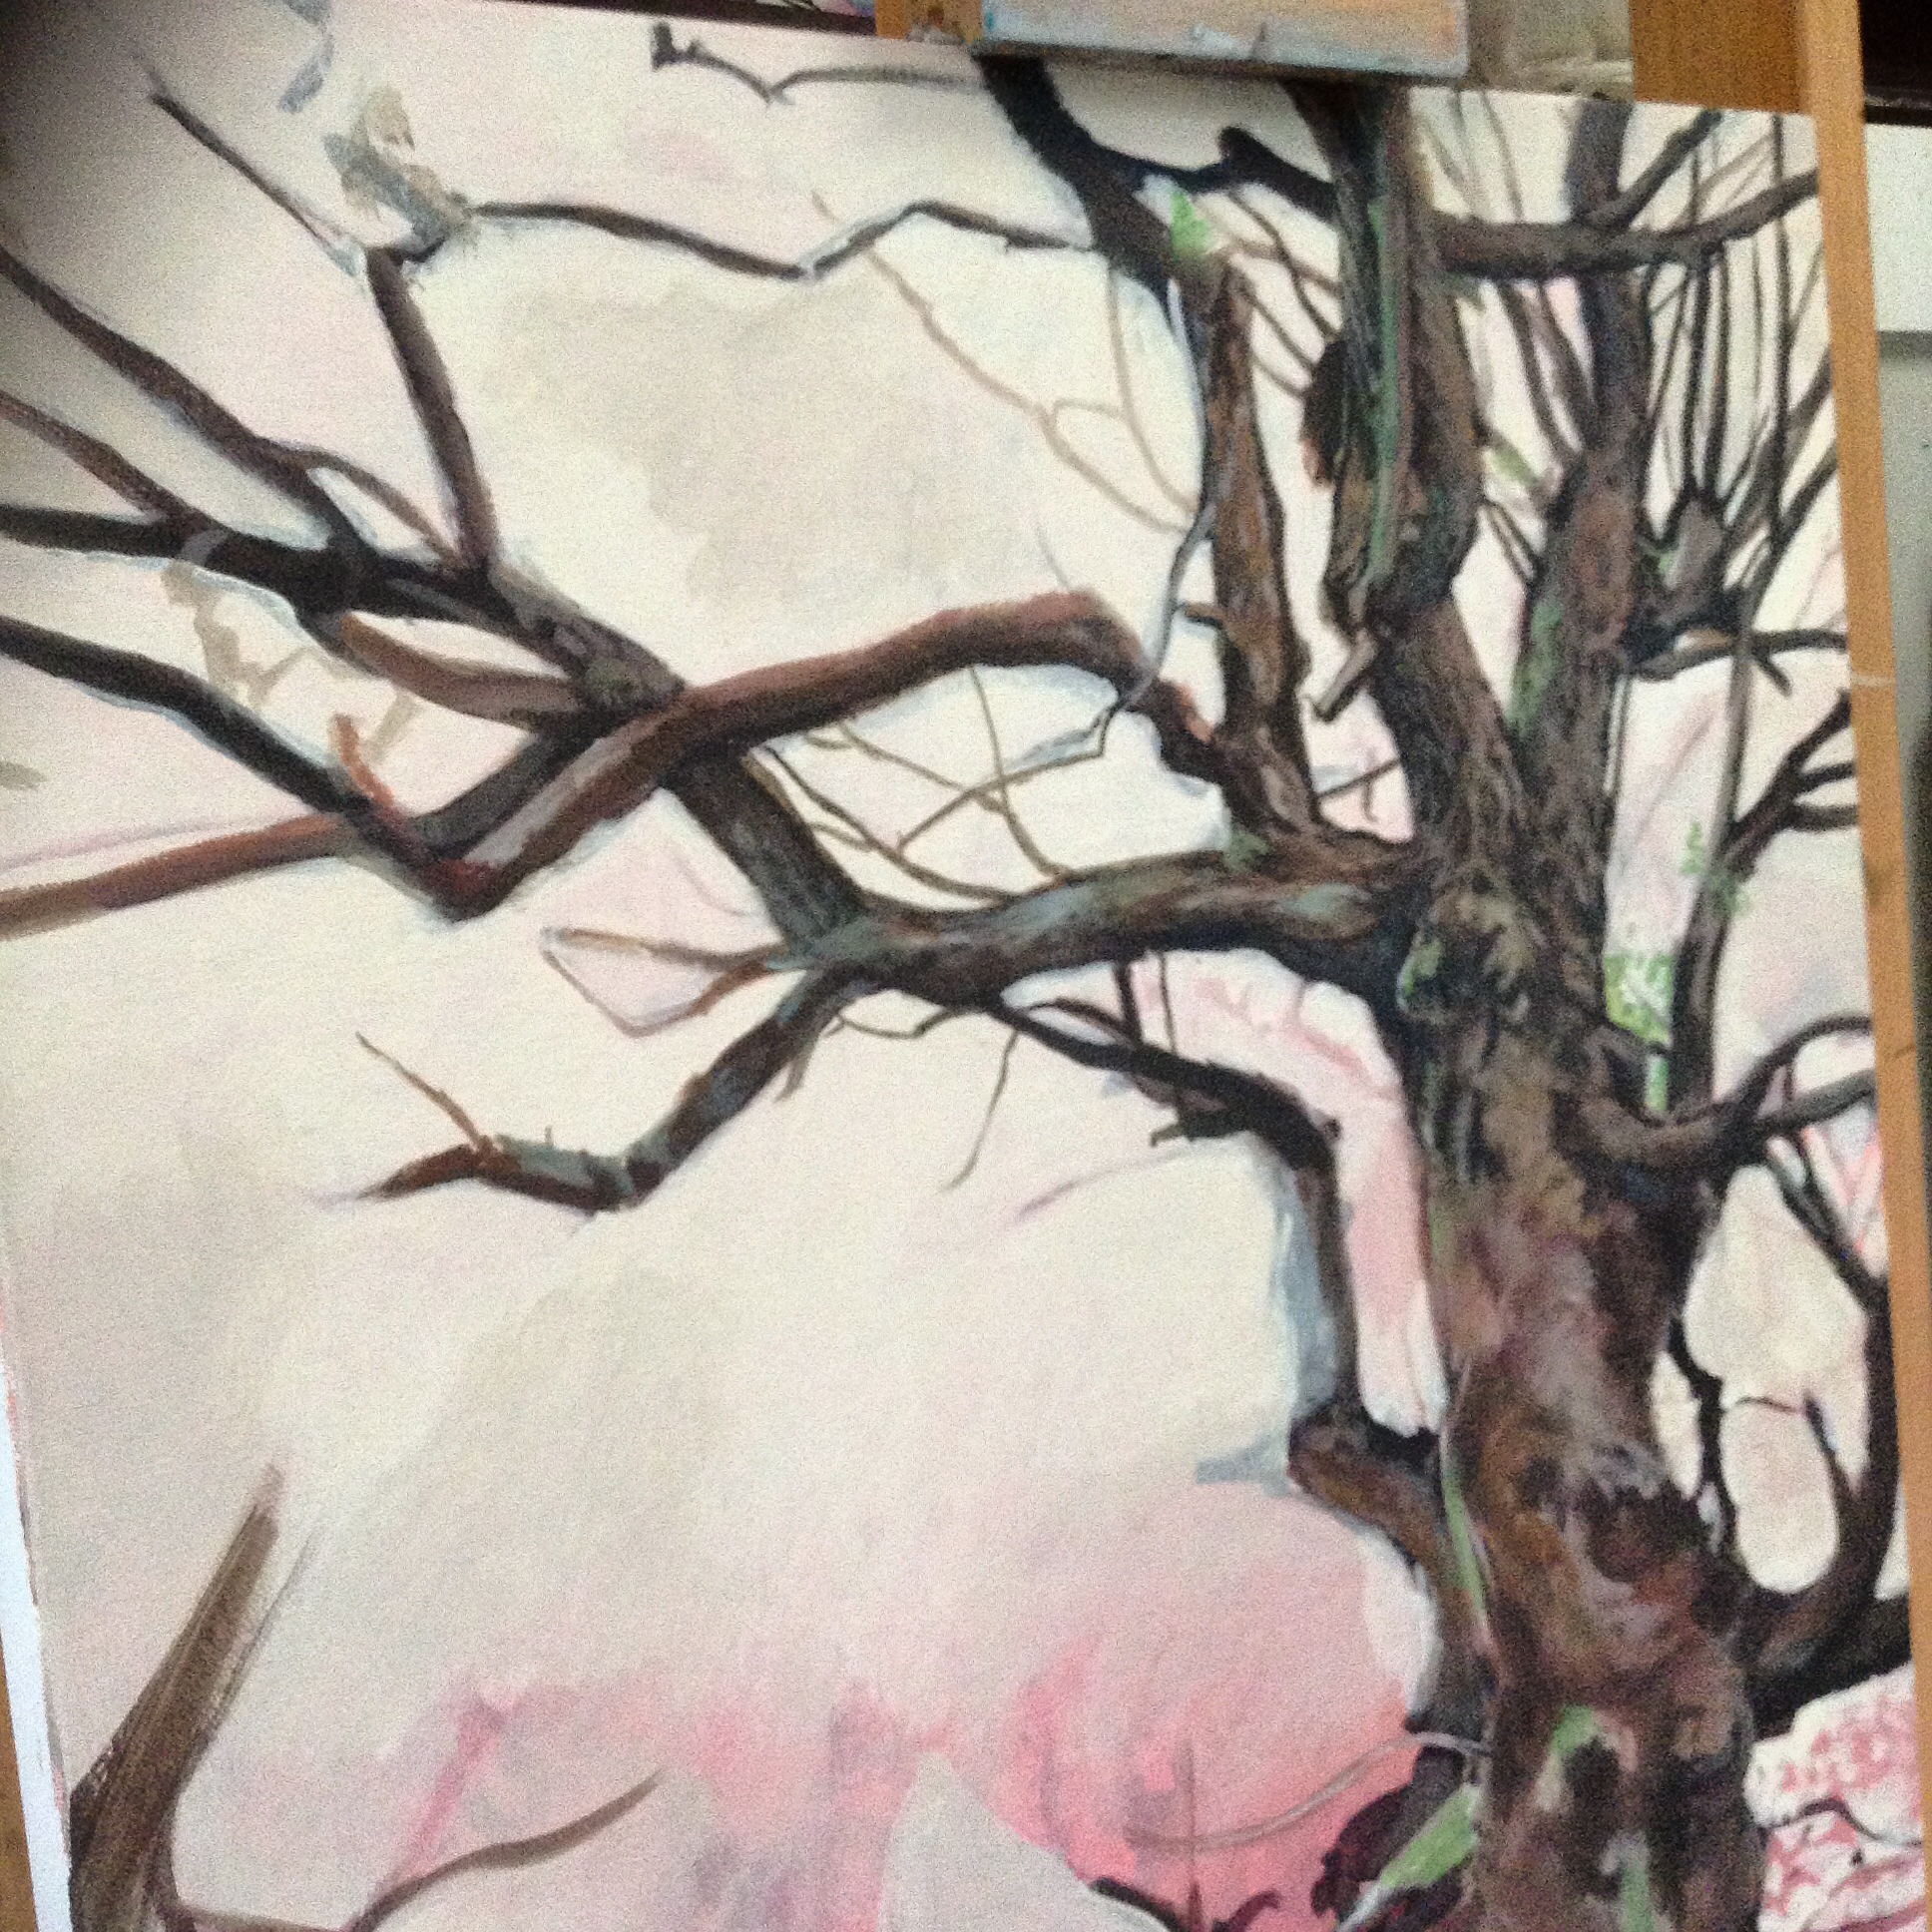 willowtreepainting2.JPG